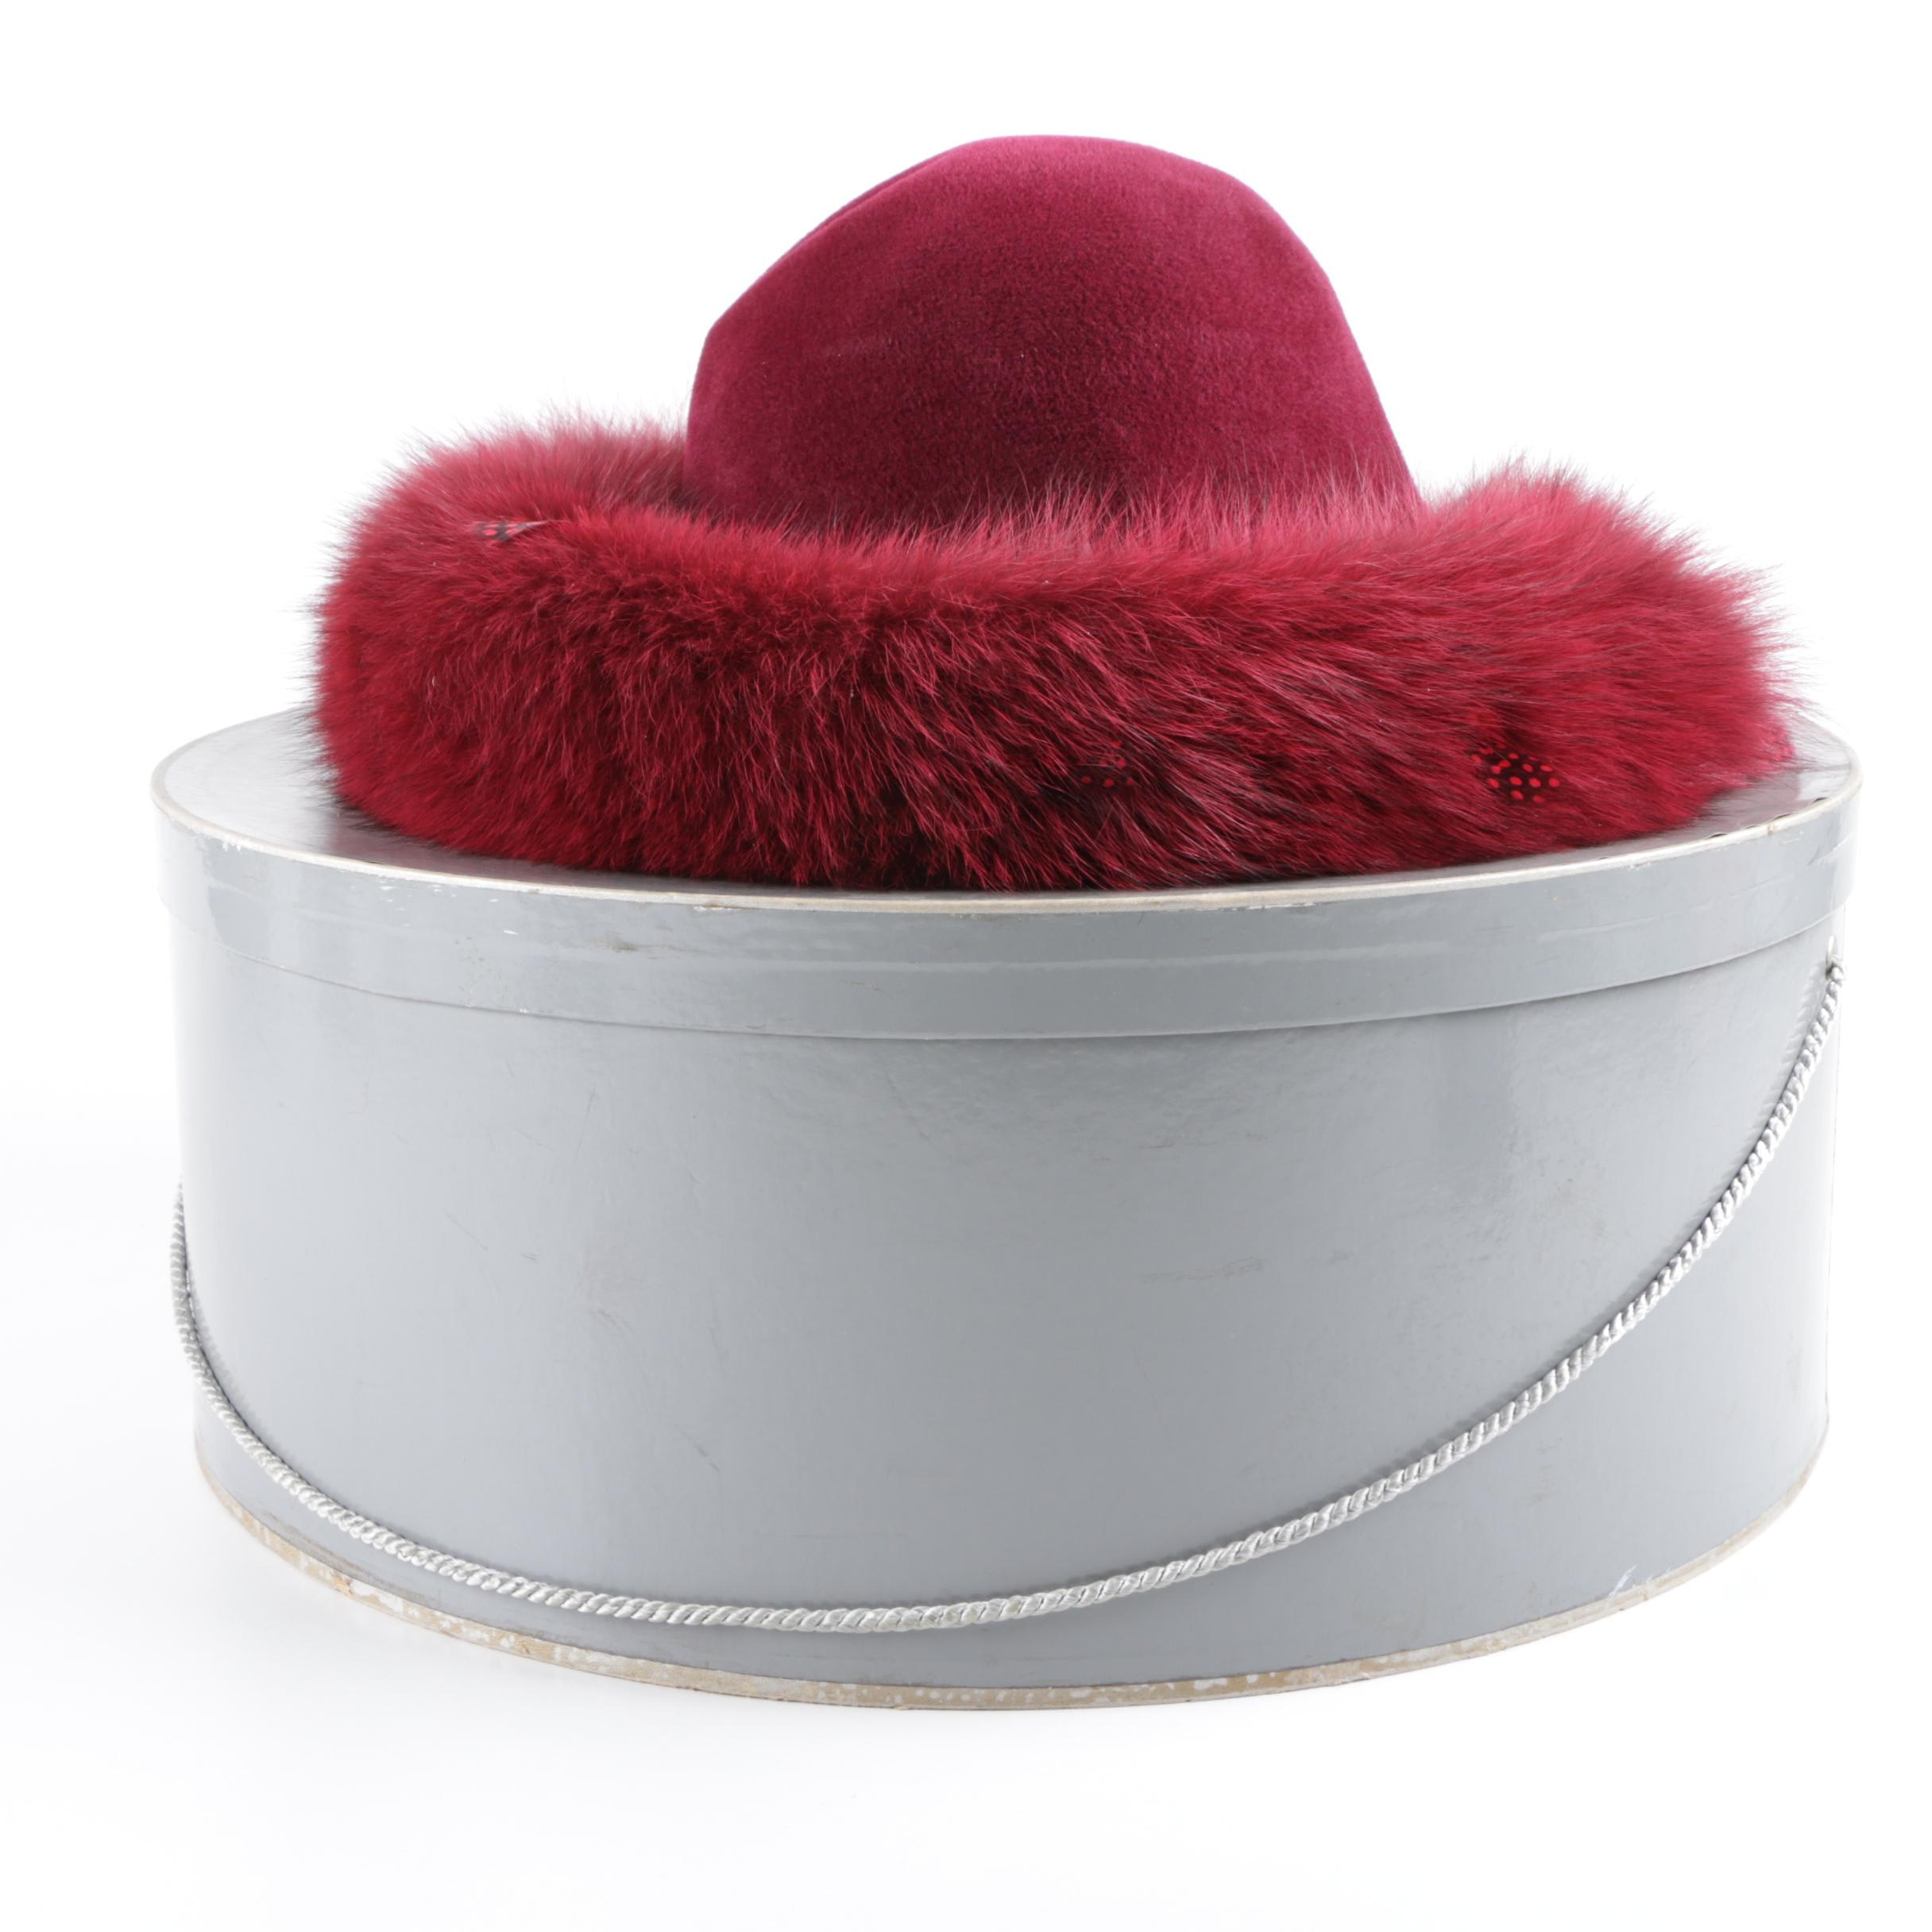 Women's Red Felt Hat with Fox Fur Trim with Box